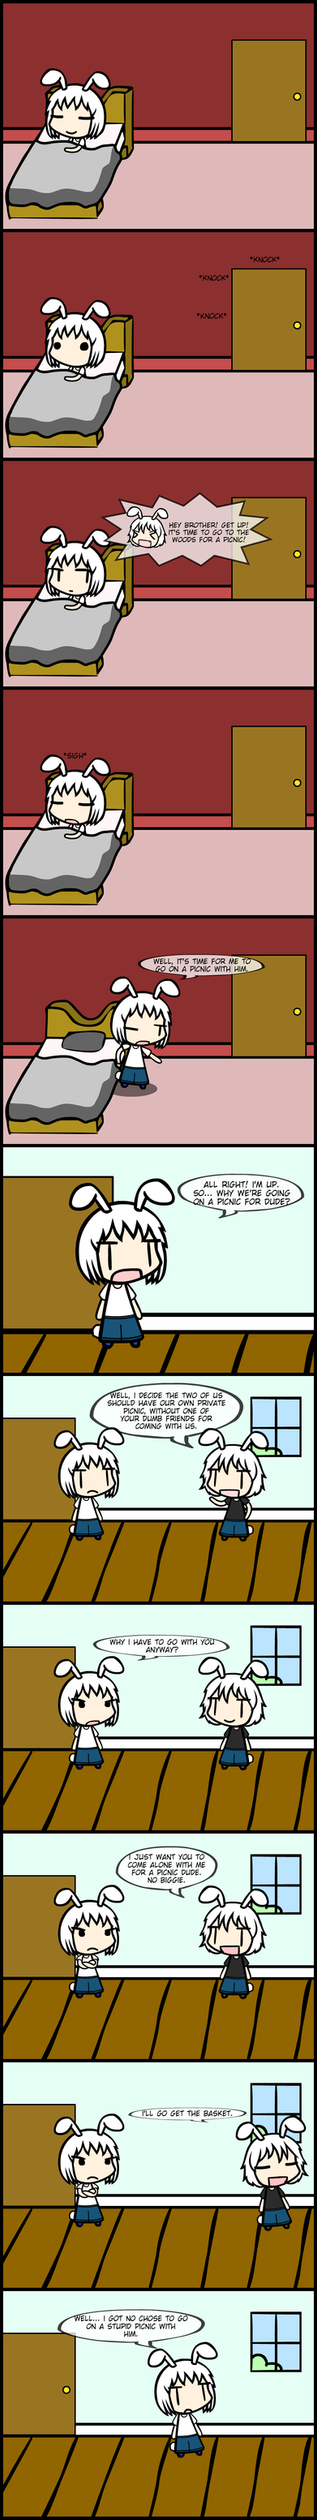 New Rabbits going to Gensokyo Chapter 1 Part 1 by Mick-Blend